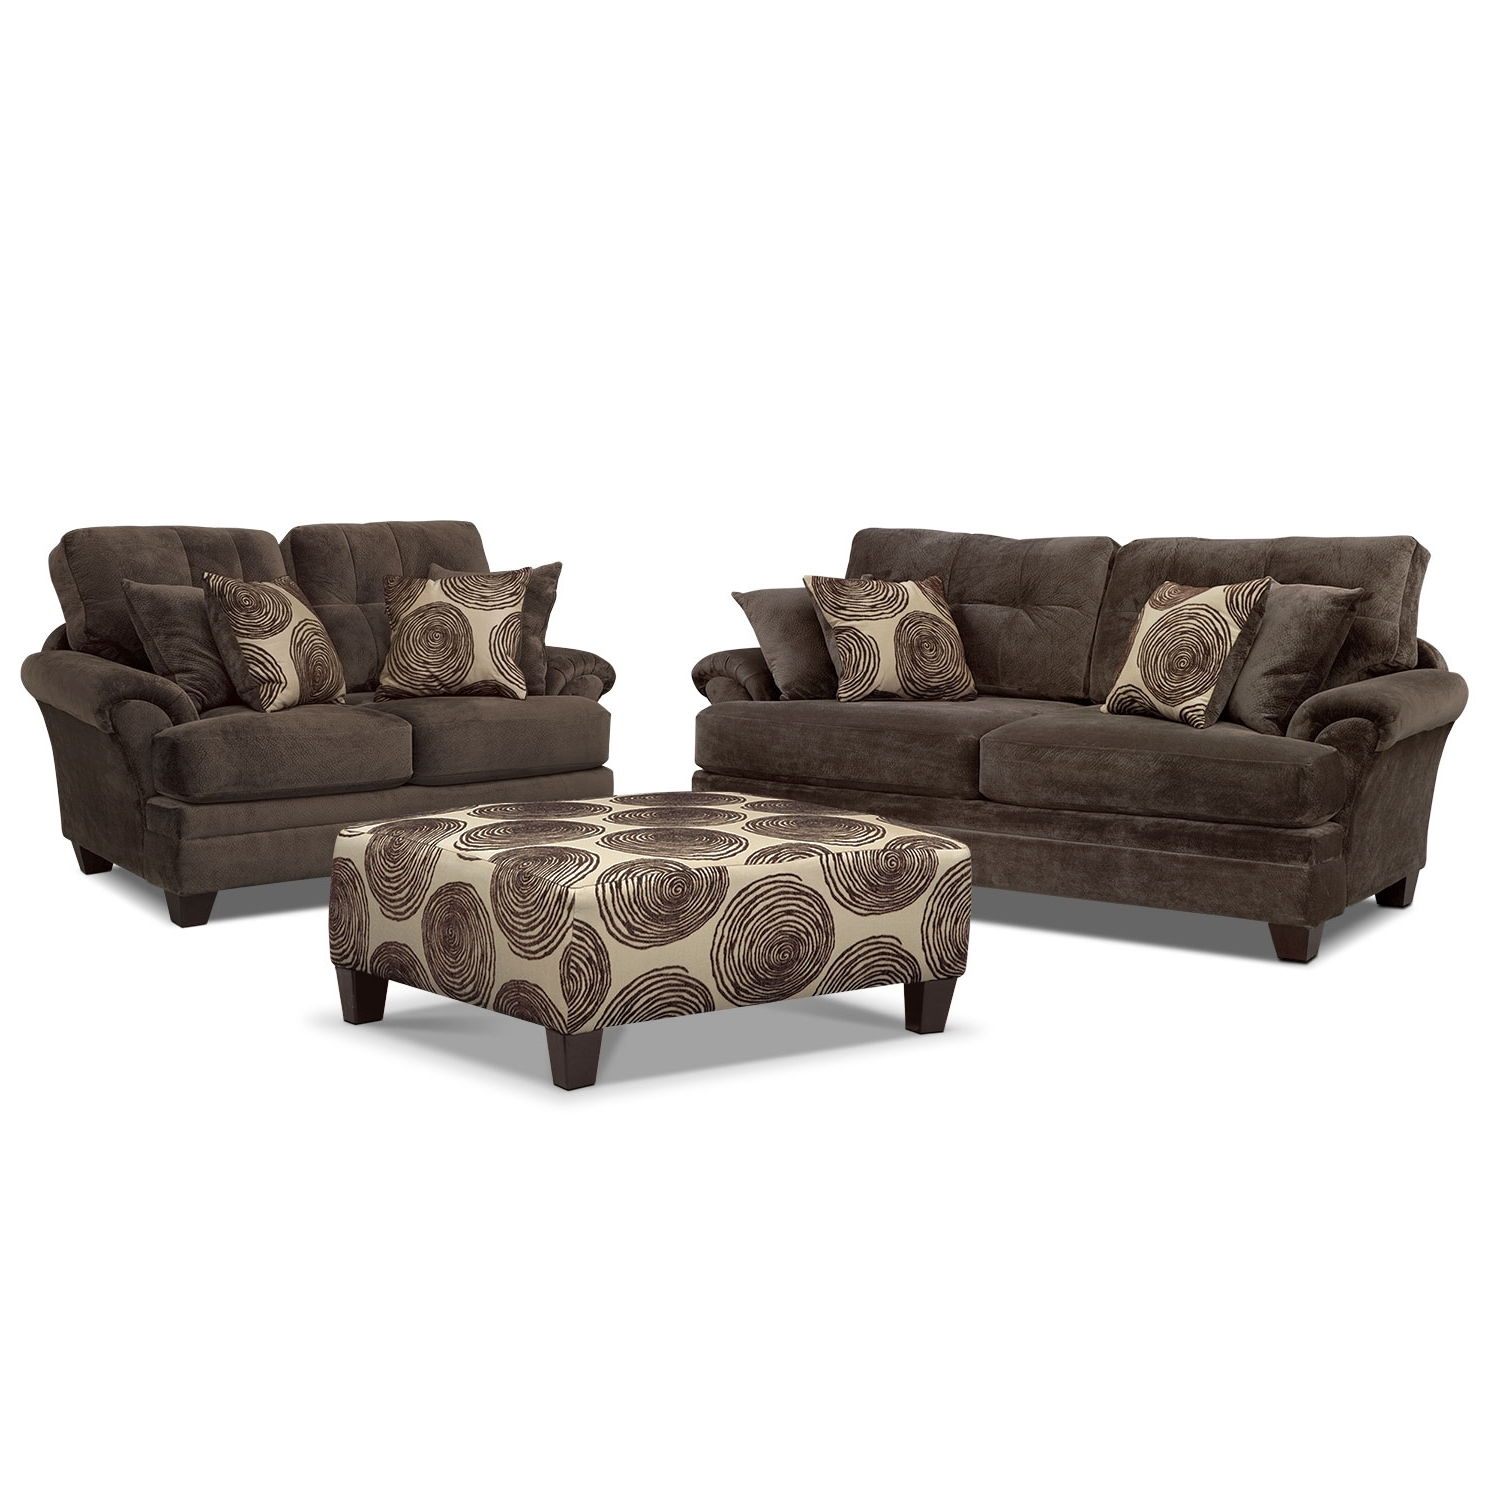 Well Known Cordelle Sofa, Loveseat And Cocktail Ottoman Set – Chocolate Throughout Loveseats With Ottoman (View 14 of 15)